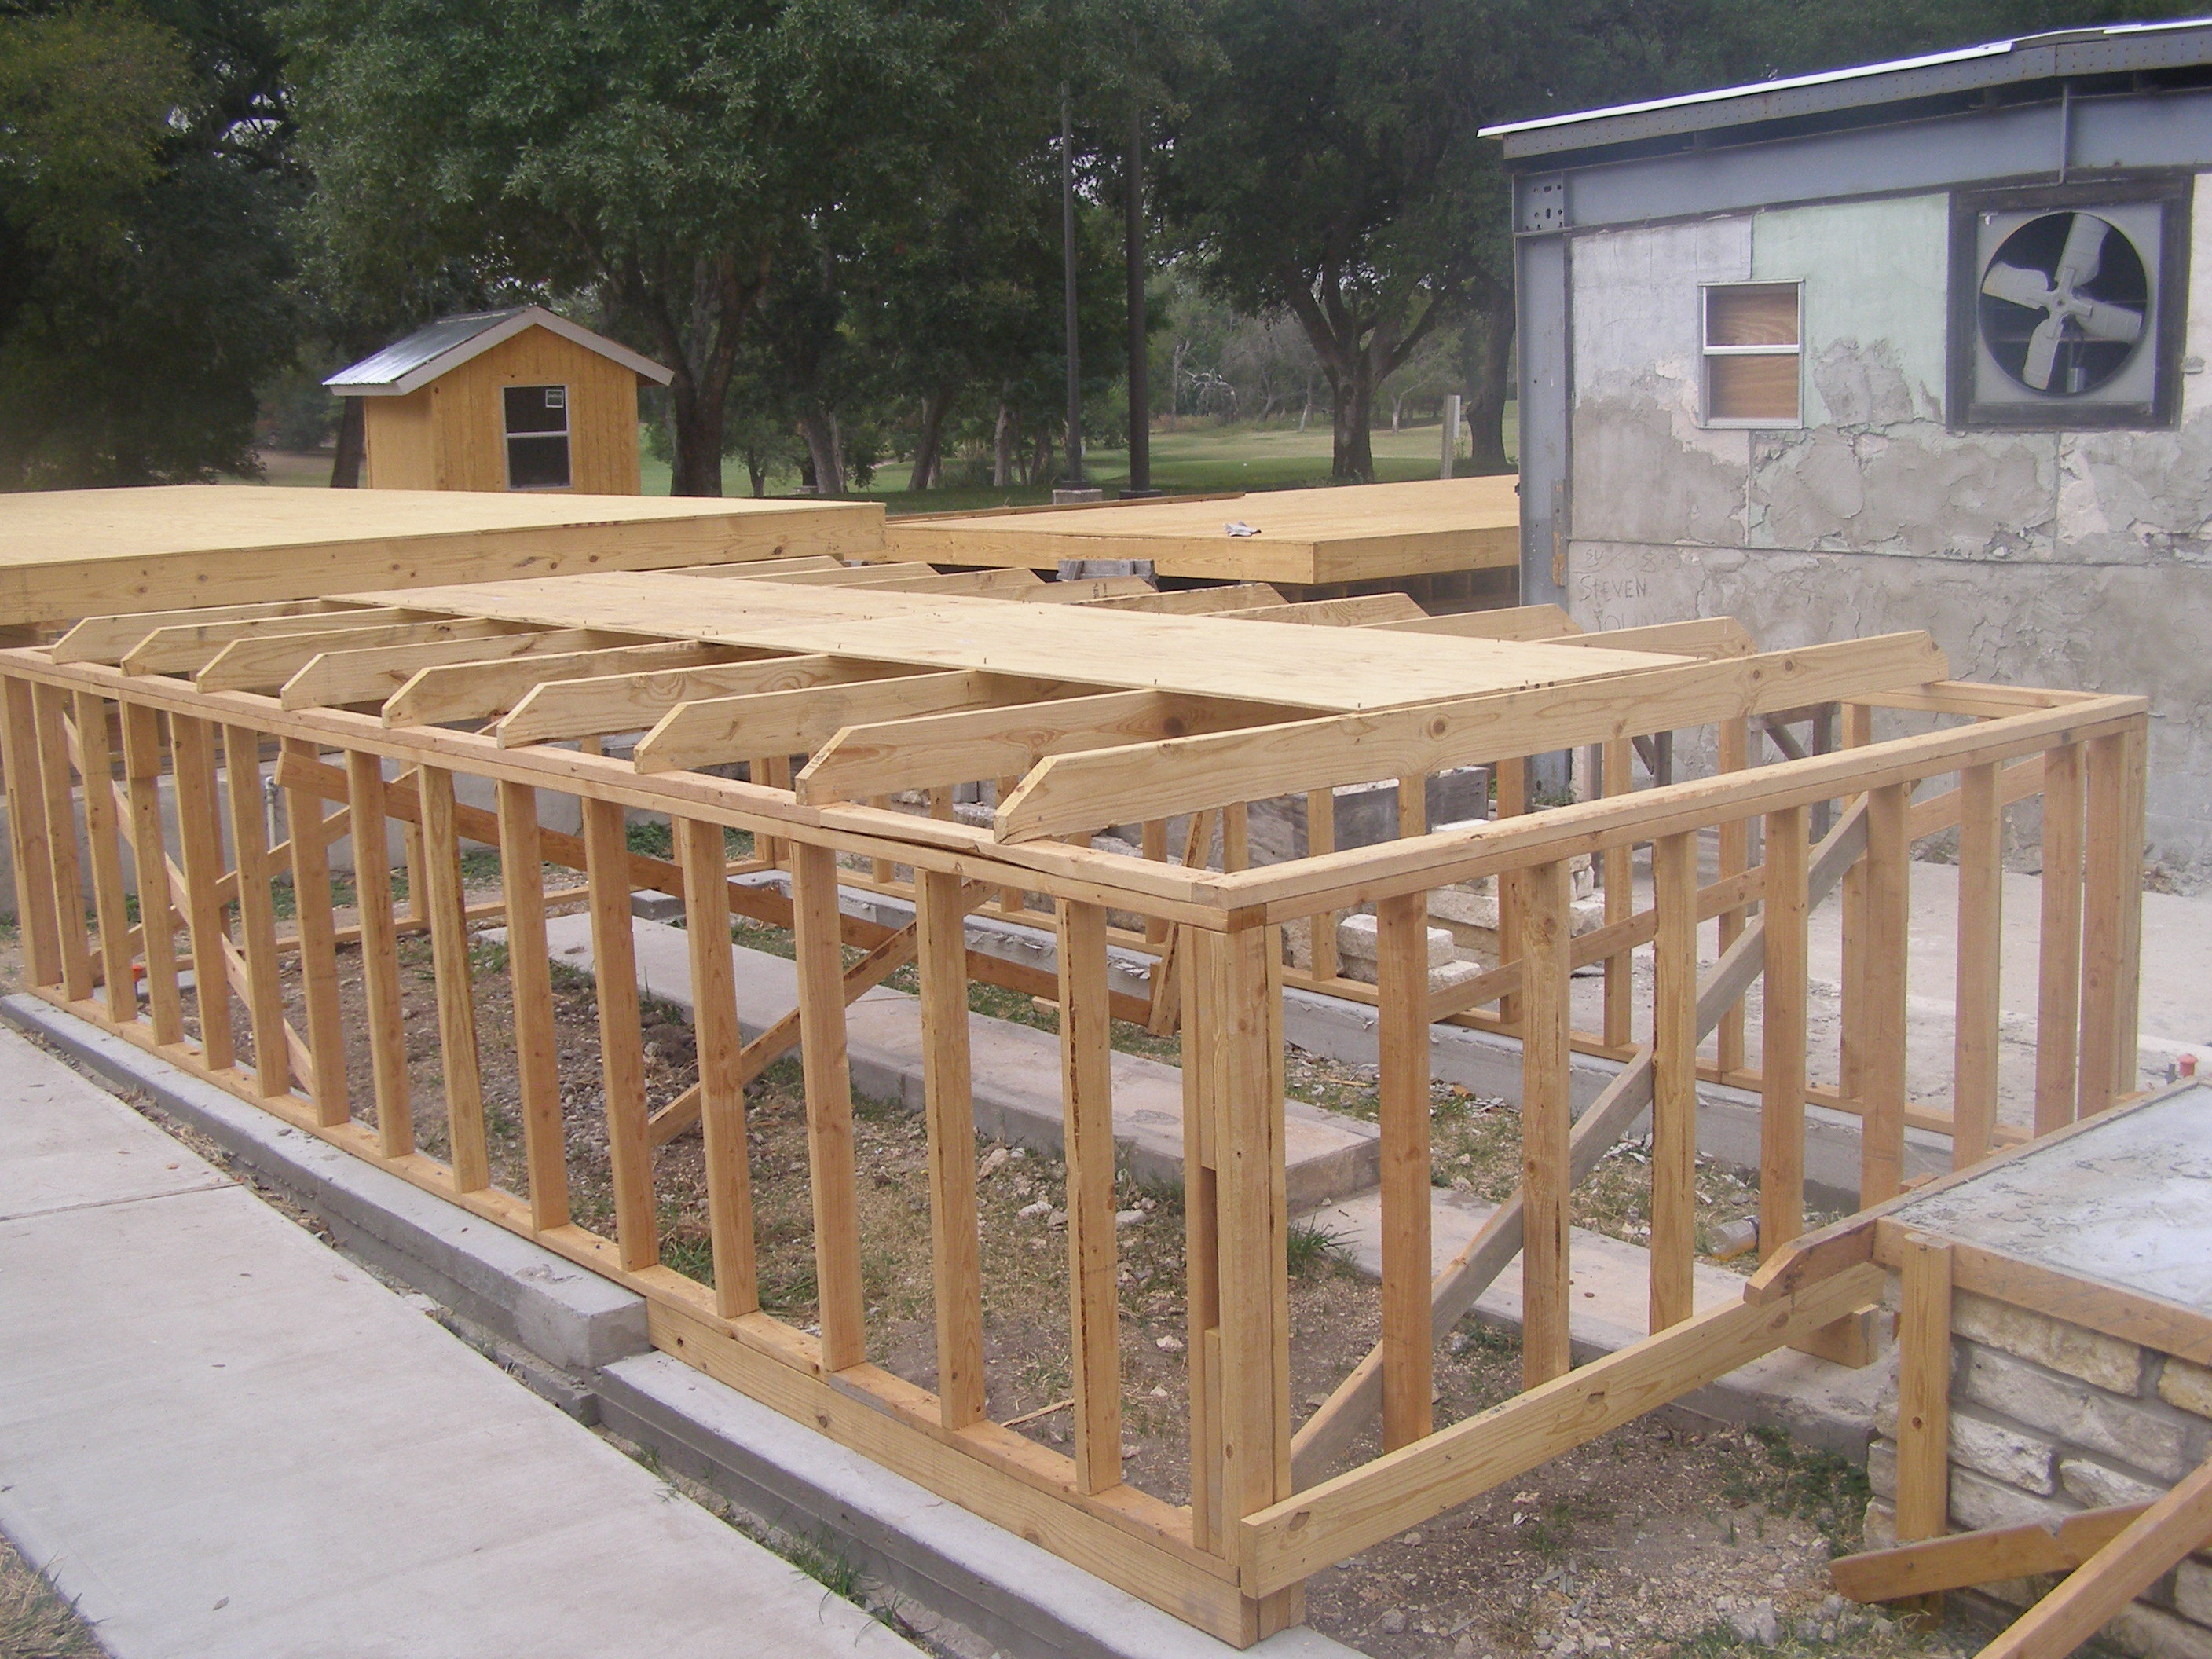 roofing base with joists